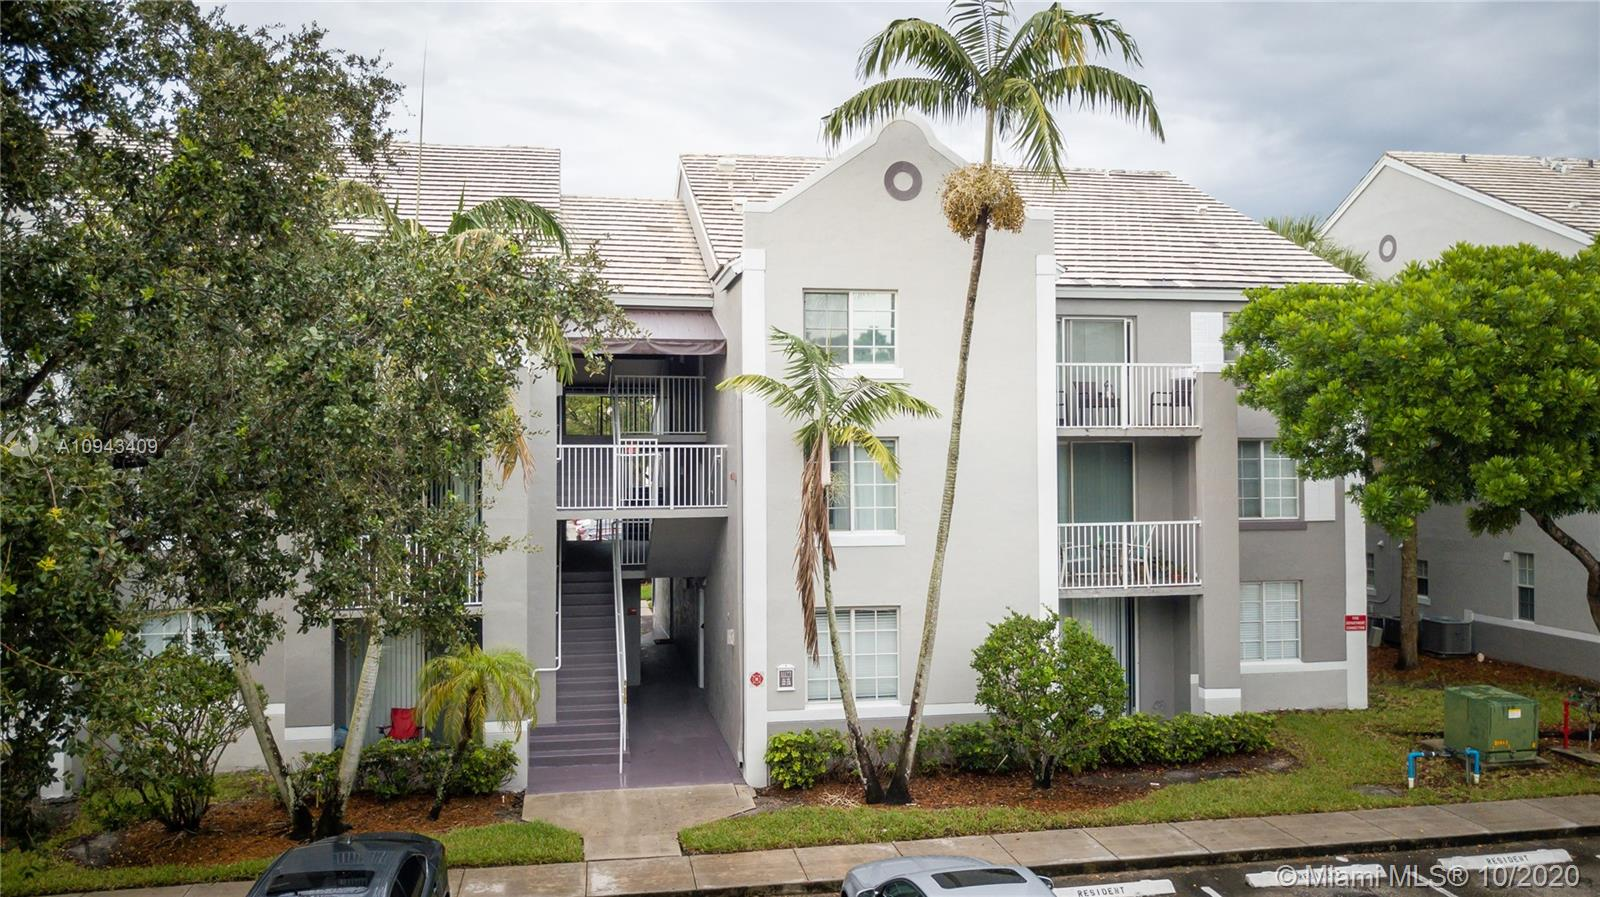 11177 SW 8th St #107 For Sale A10943409, FL